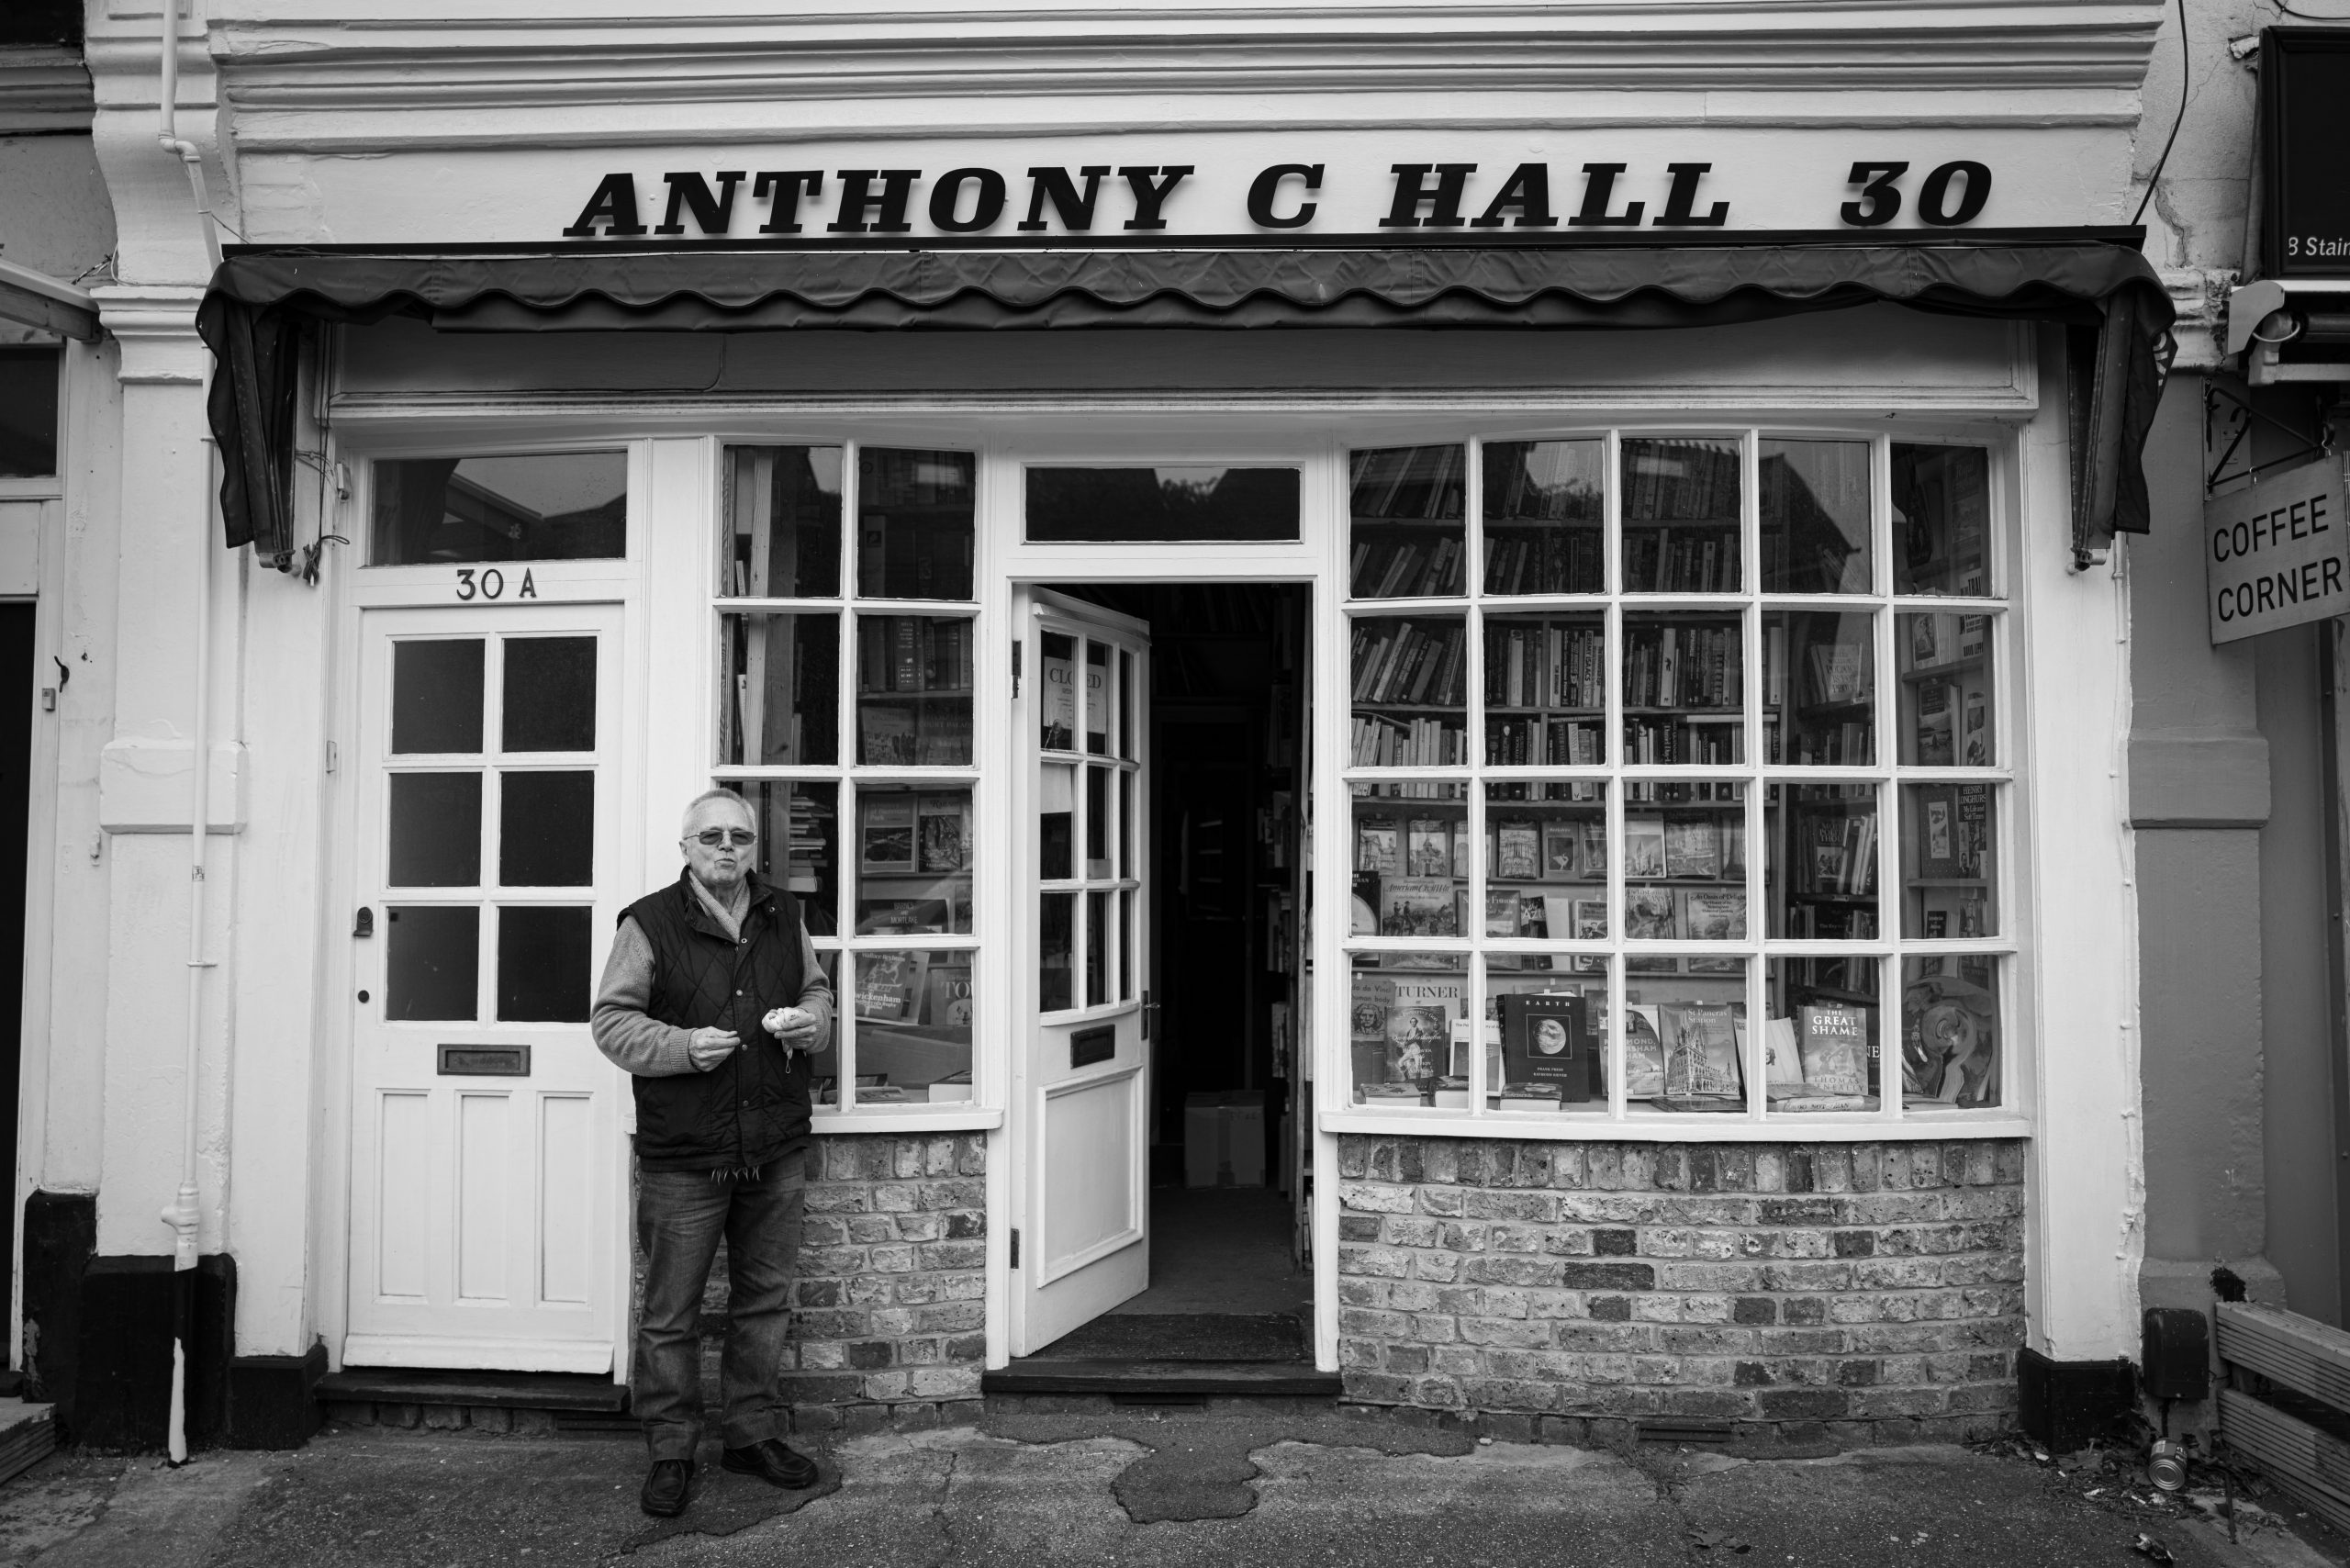 Anthony C Hall, Twickenham Bookseller